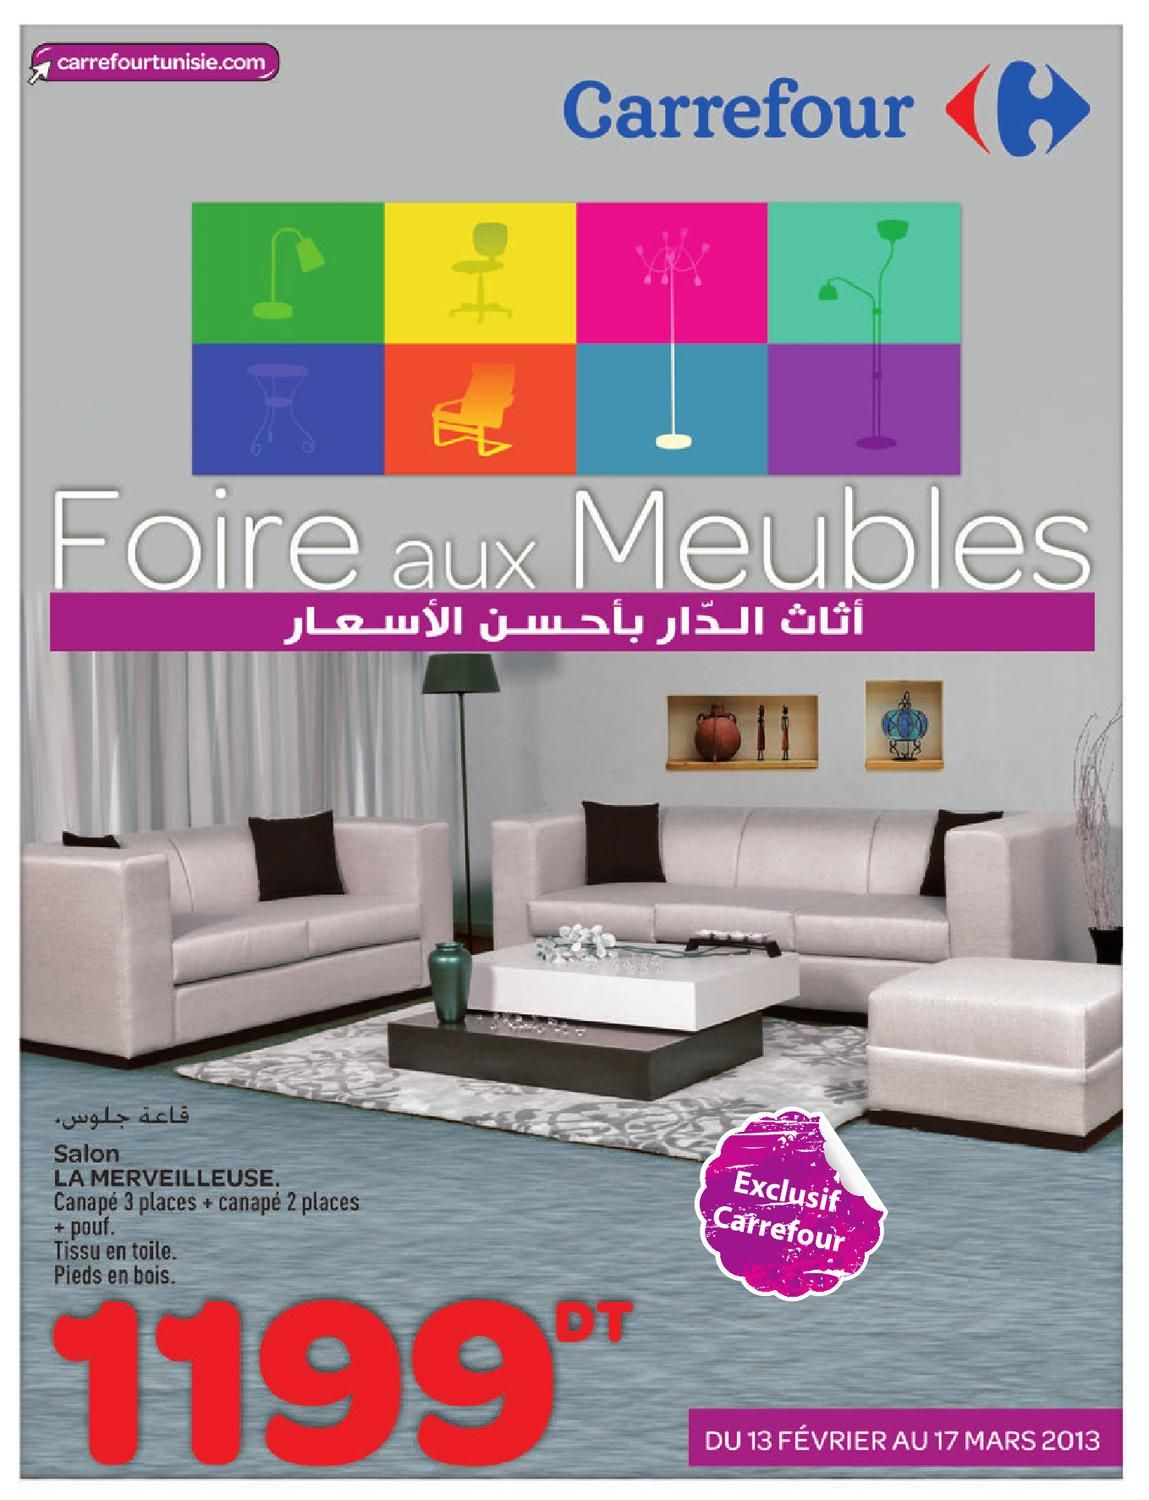 issuu catalogue carrefour foire aux meulbes by carrefour tunisie. Black Bedroom Furniture Sets. Home Design Ideas